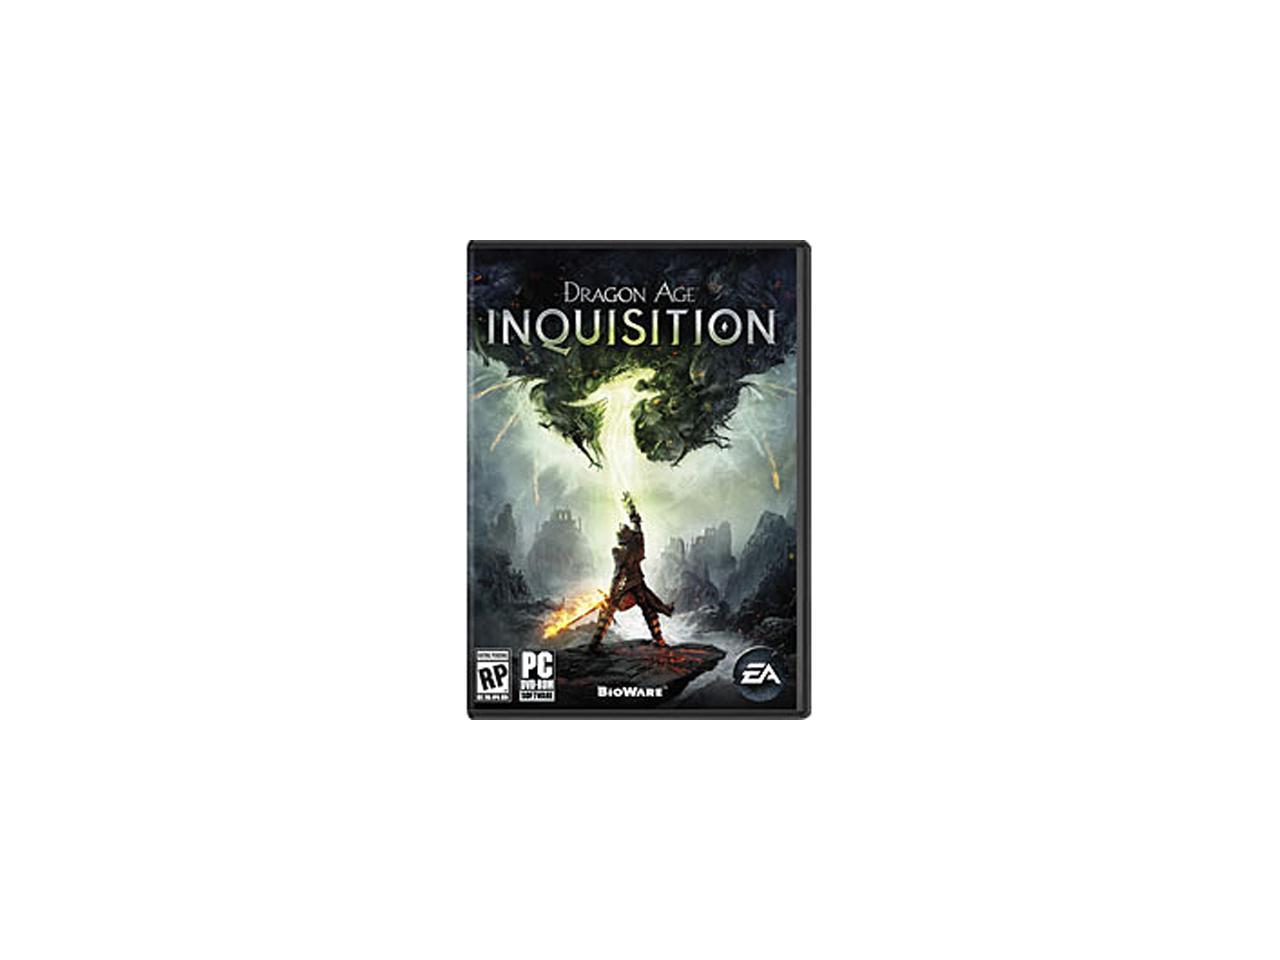 Tarot Cards | Dragon Age Inquisition Wiki